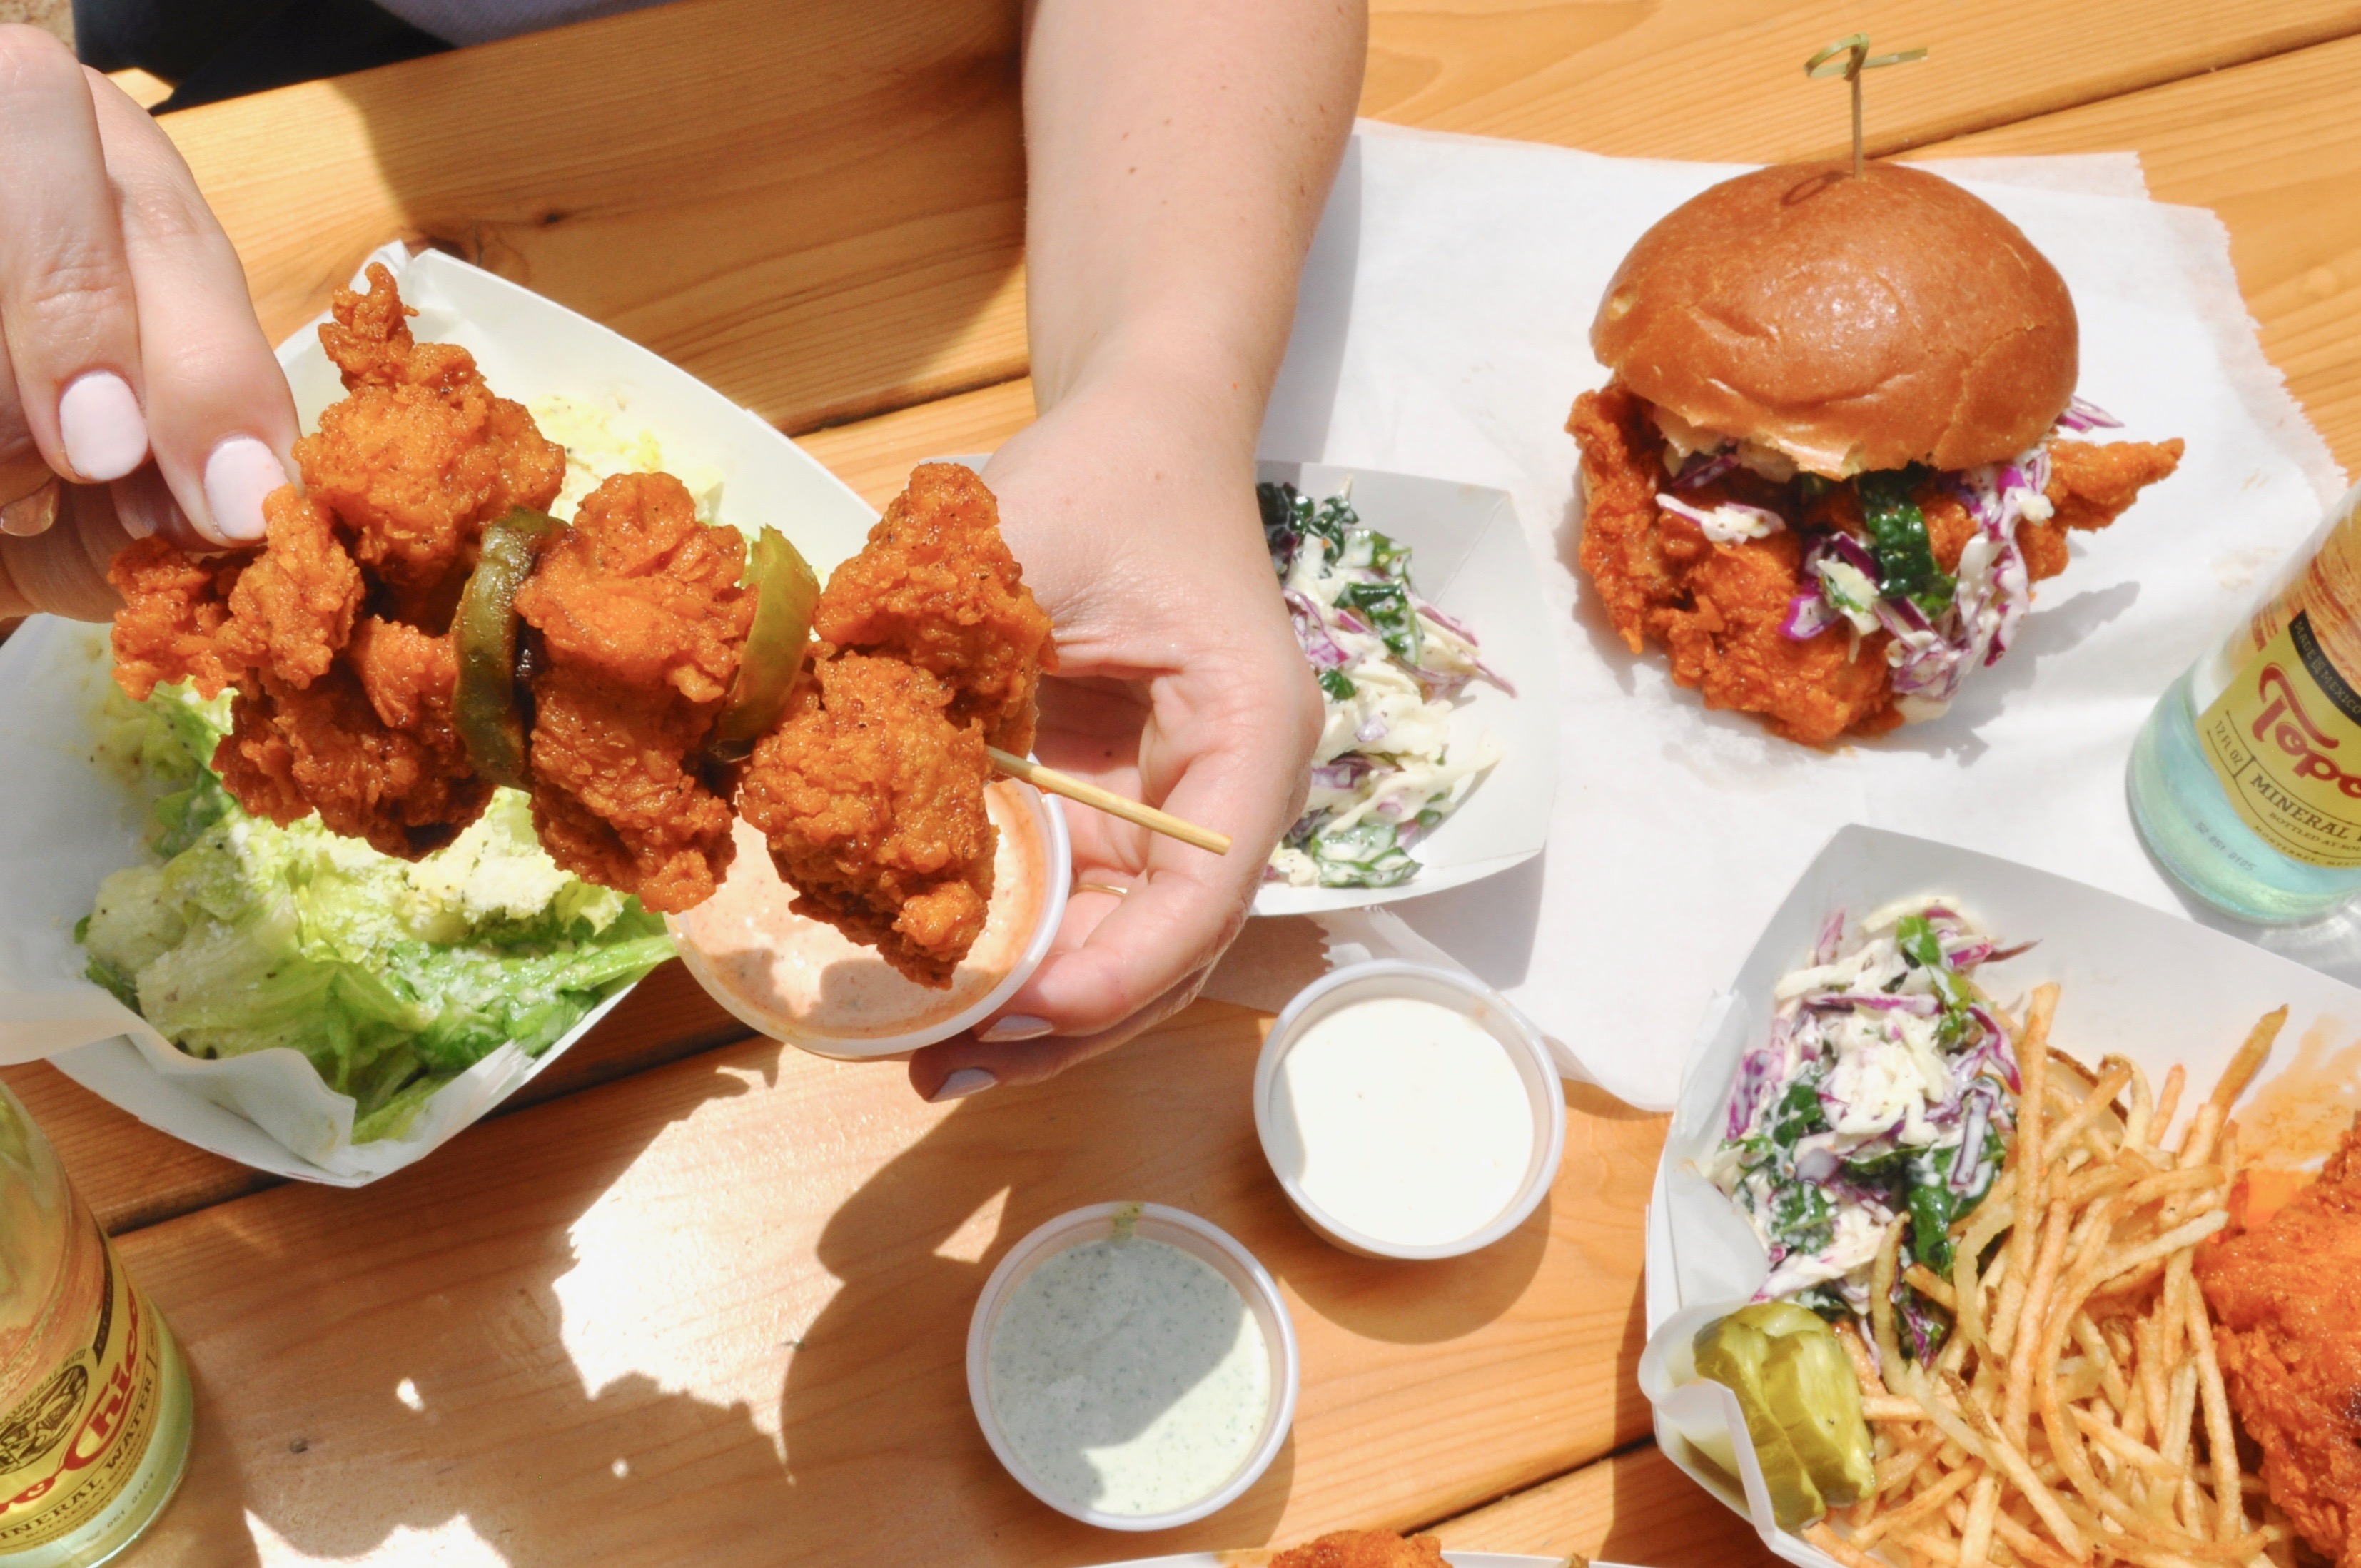 Hot chicken from Tumble 22